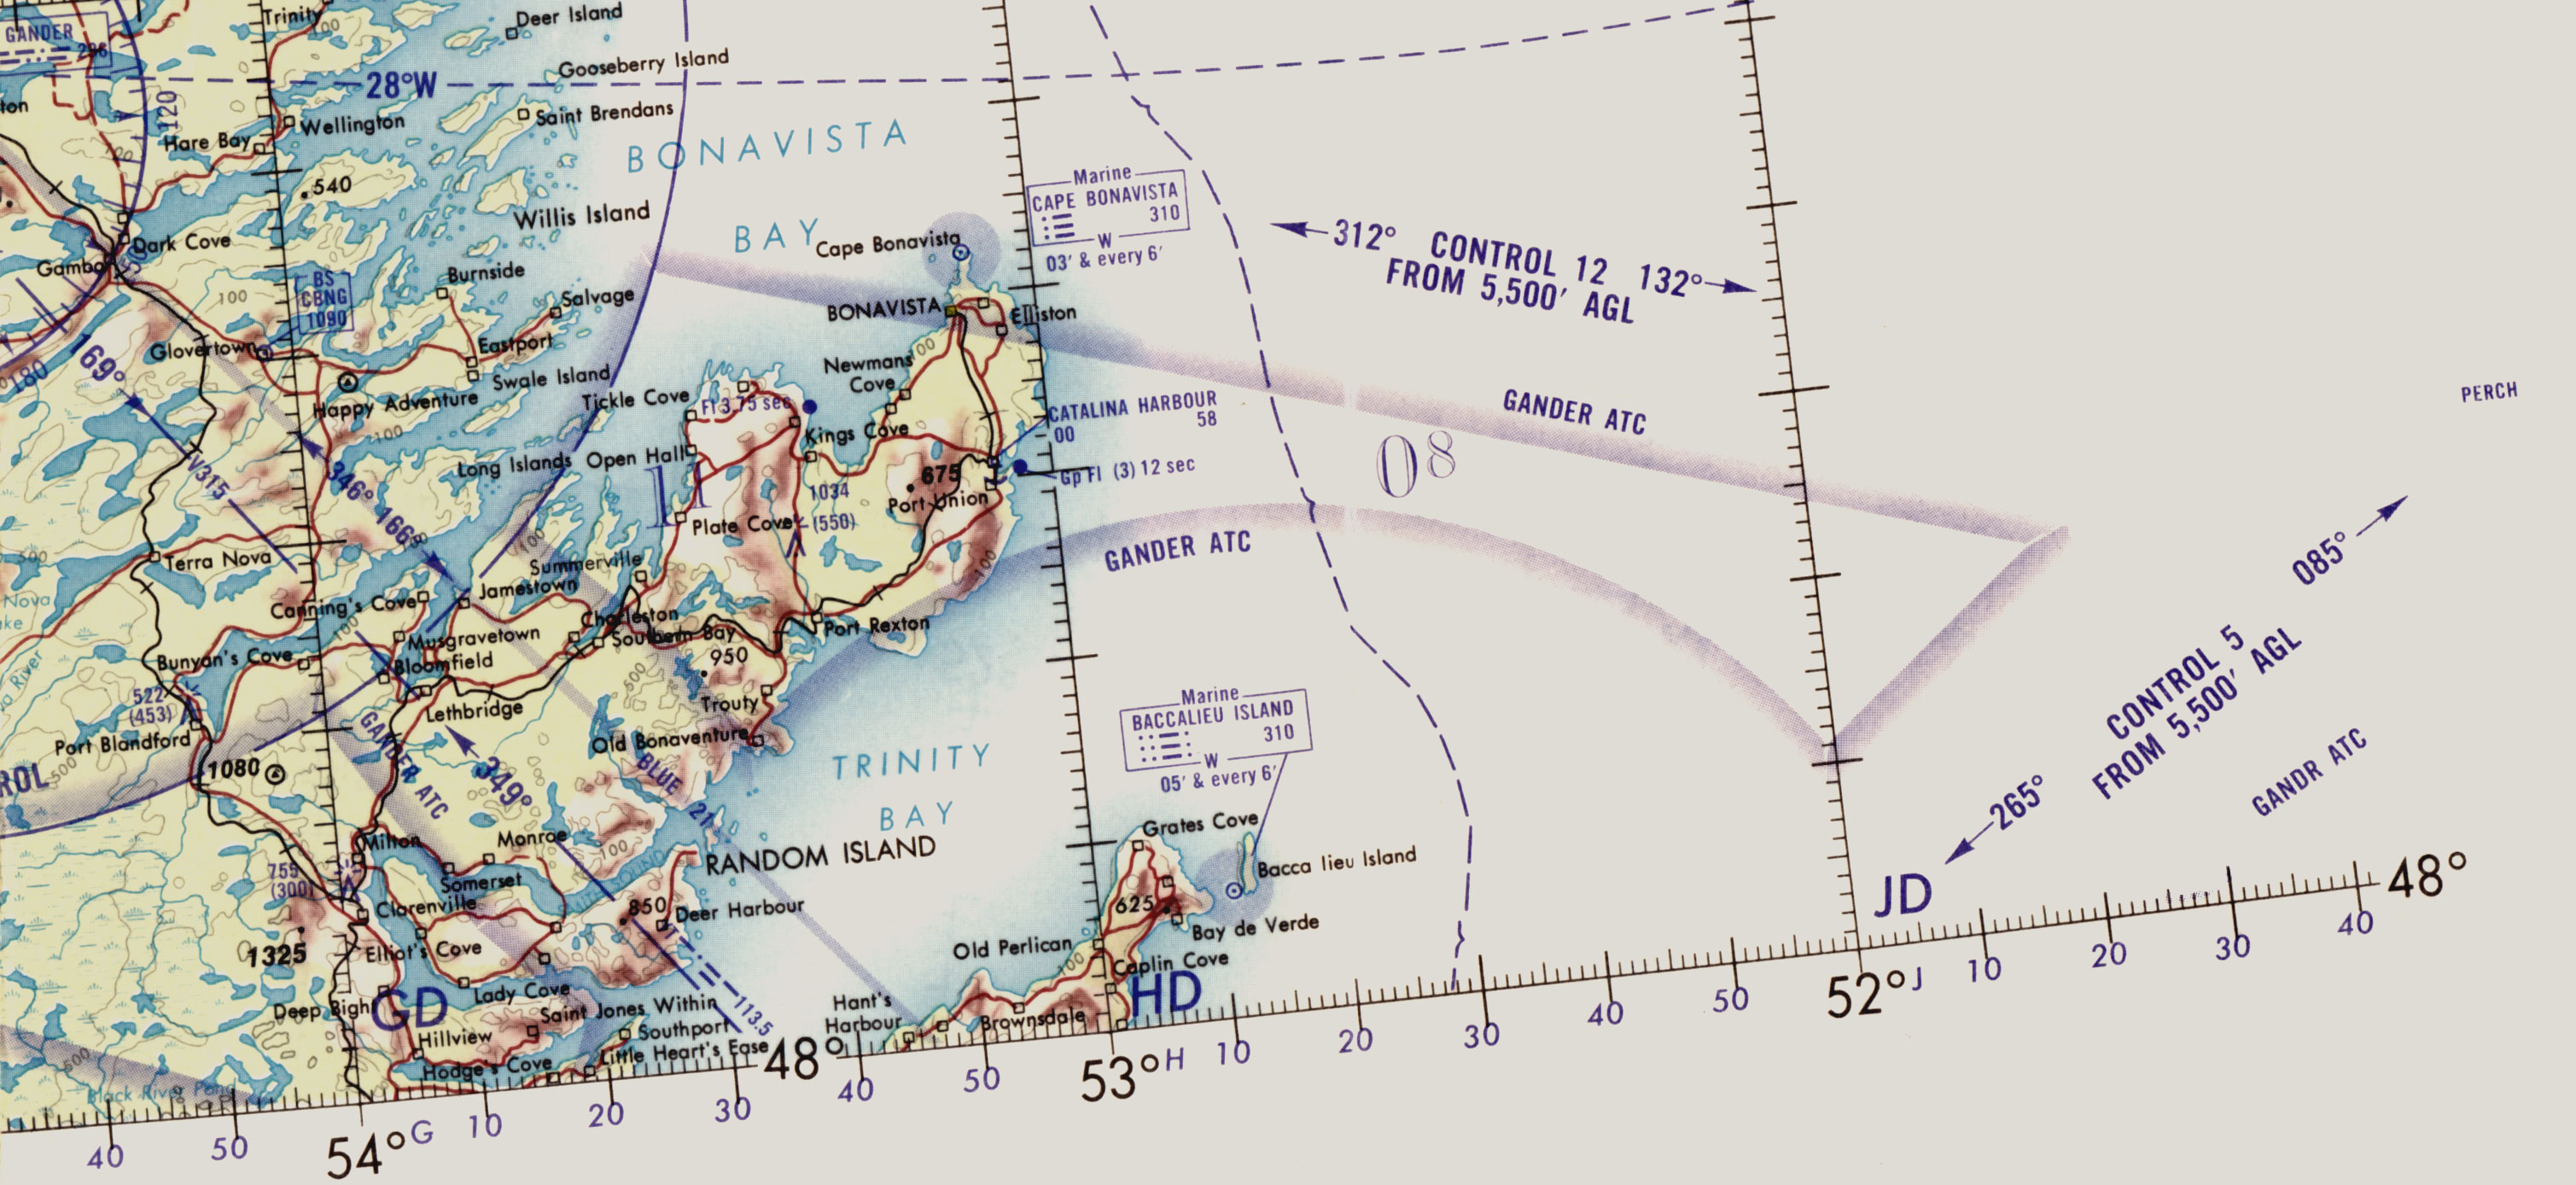 a corner of an aviation map depicting an area of rugged coastline